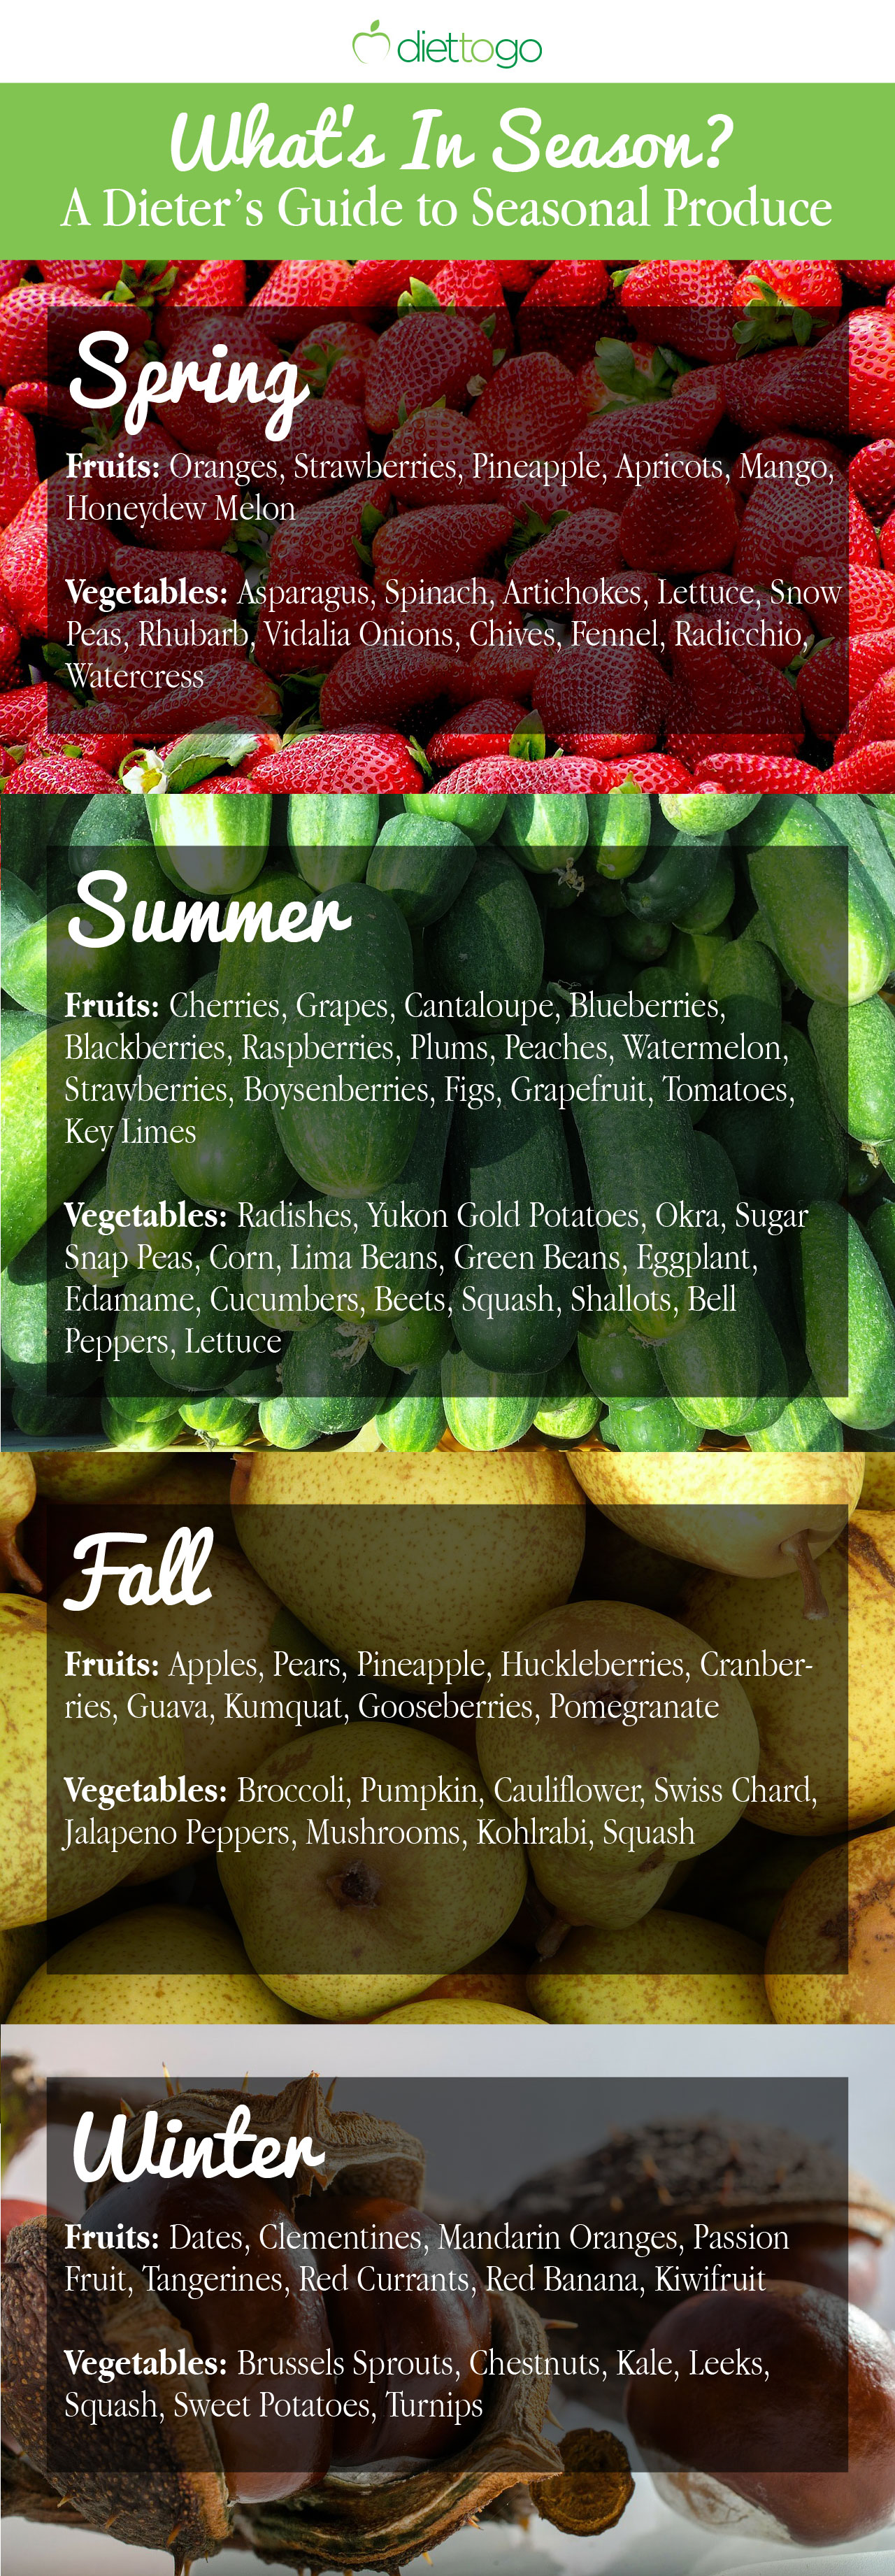 What's in season? A Dieter's Guide to Seasonal Produce